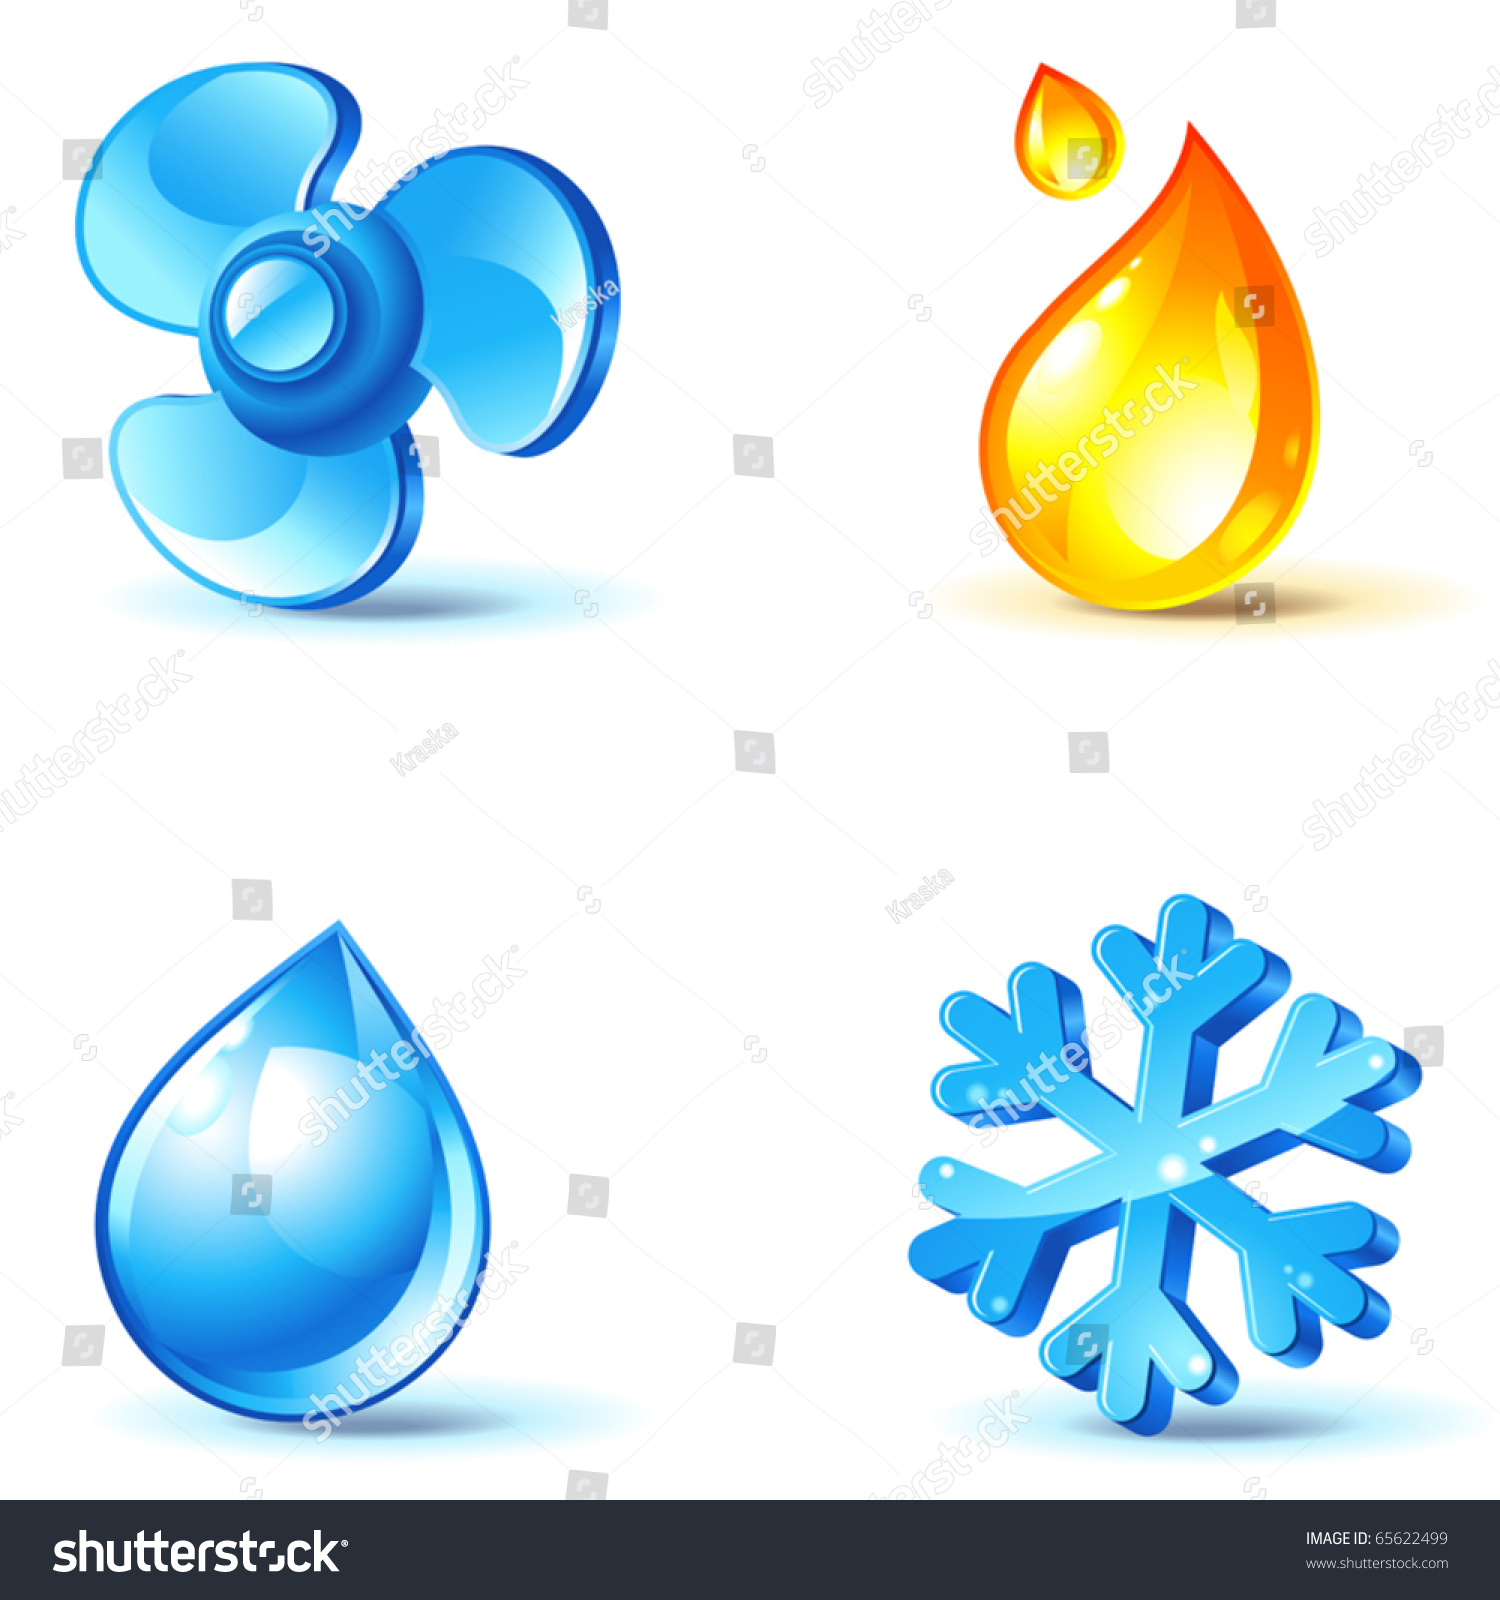 1500x1600 Cold Air Conditioner Clipart Collection